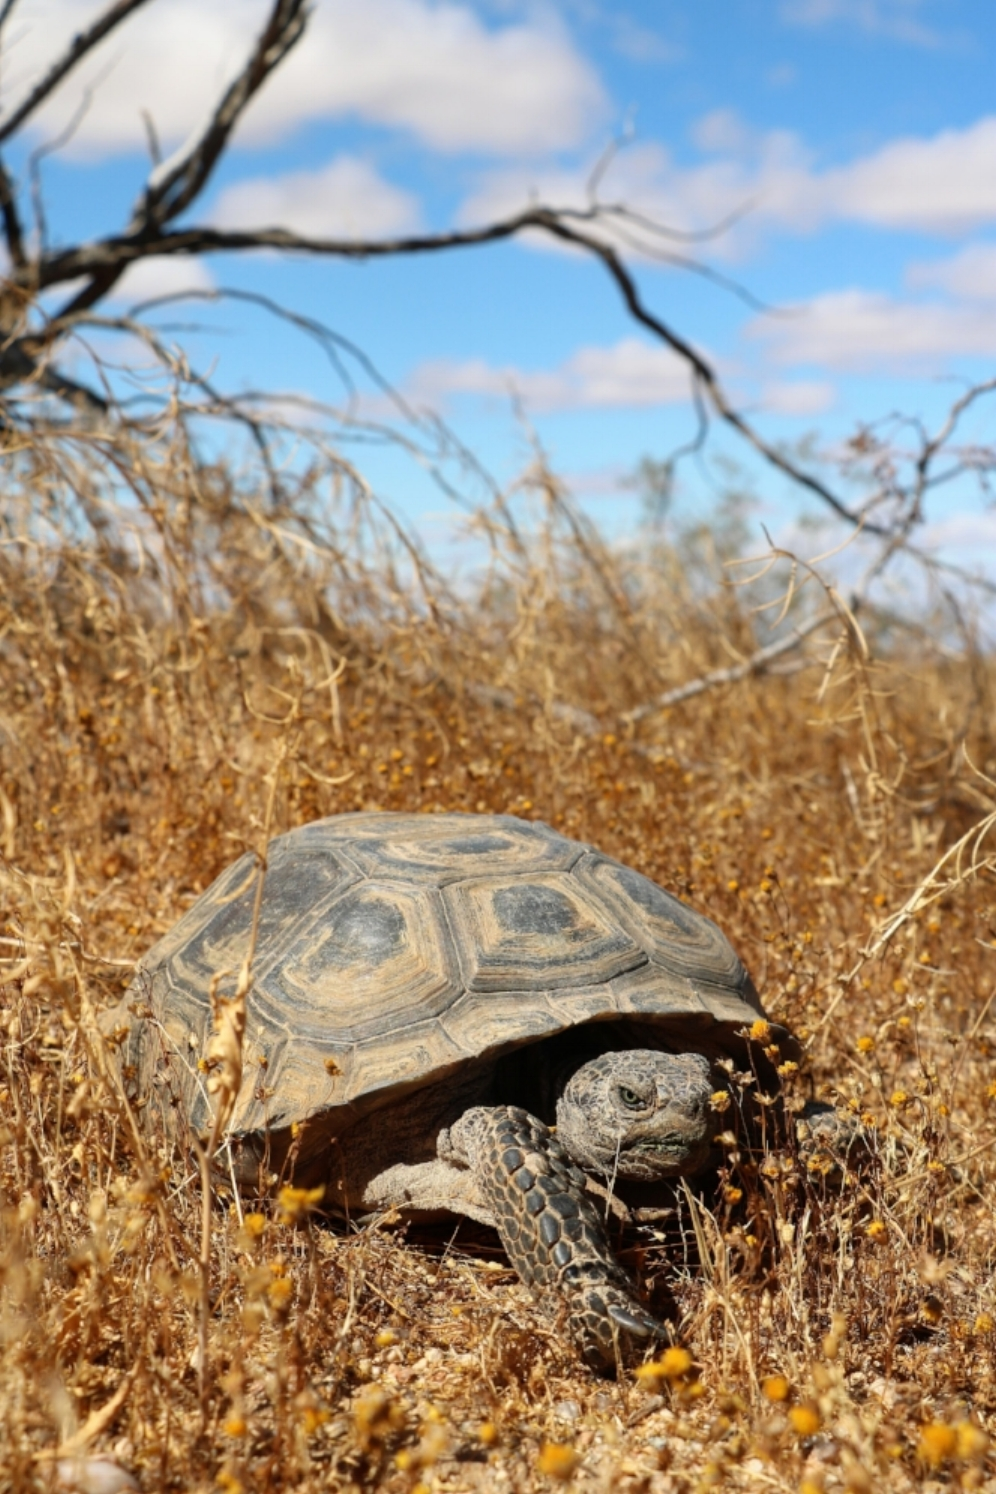 Mojave desert tortoise ( Gopherus agassizii ) at the Desert Tortoise Natural Area (California City, California). Photograph by George L. Heinrich.